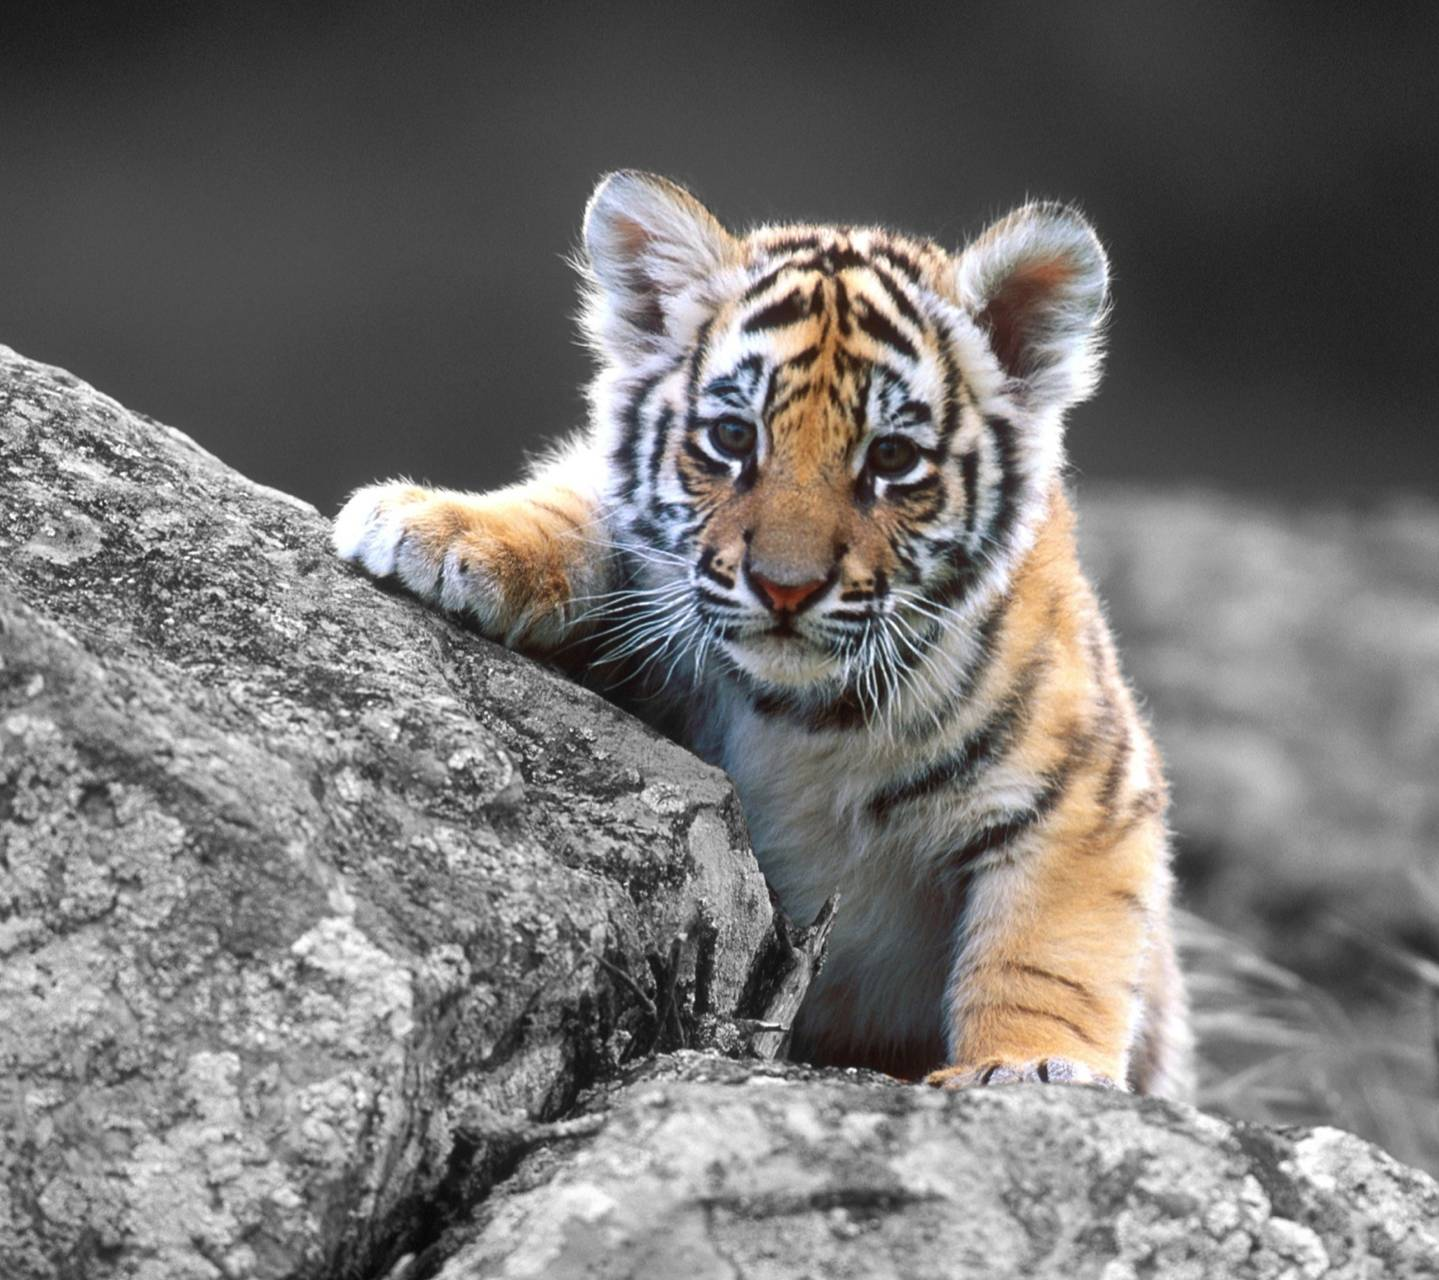 Cute Baby Tiger Wallpaper By XxSalmanAlixX